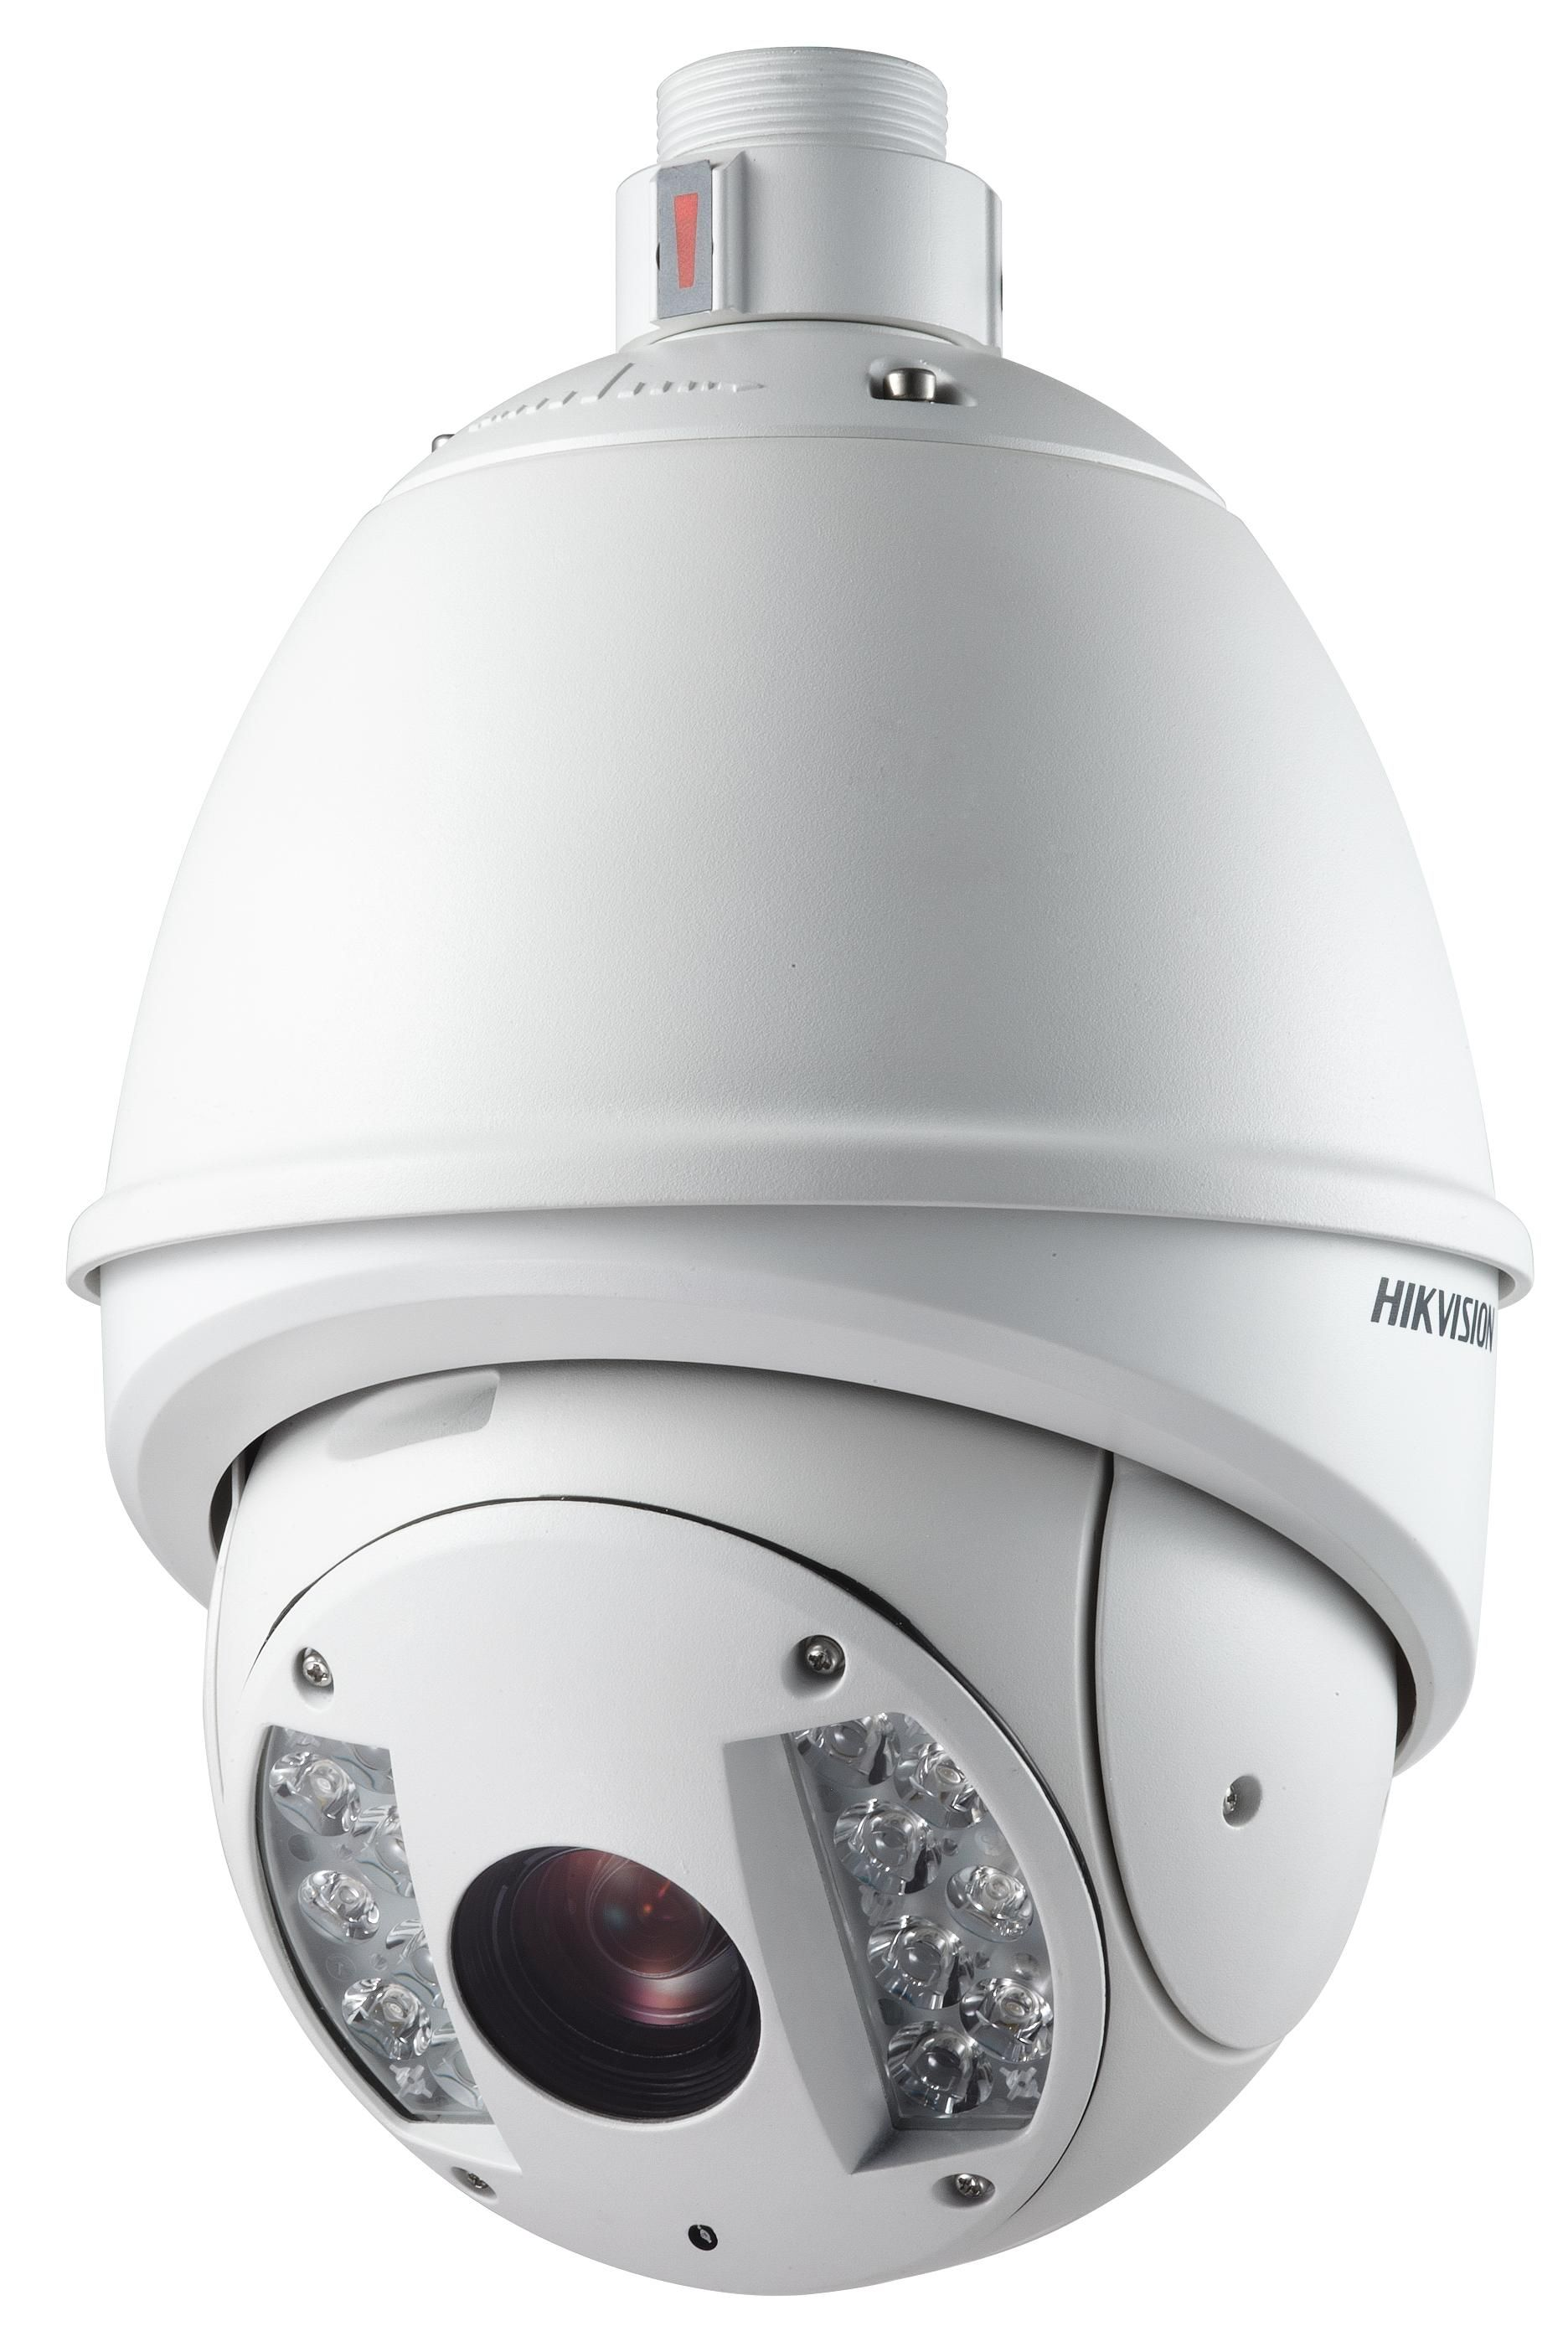 Timelon Systems gives finest #CCTV #Surveillance Security System ...